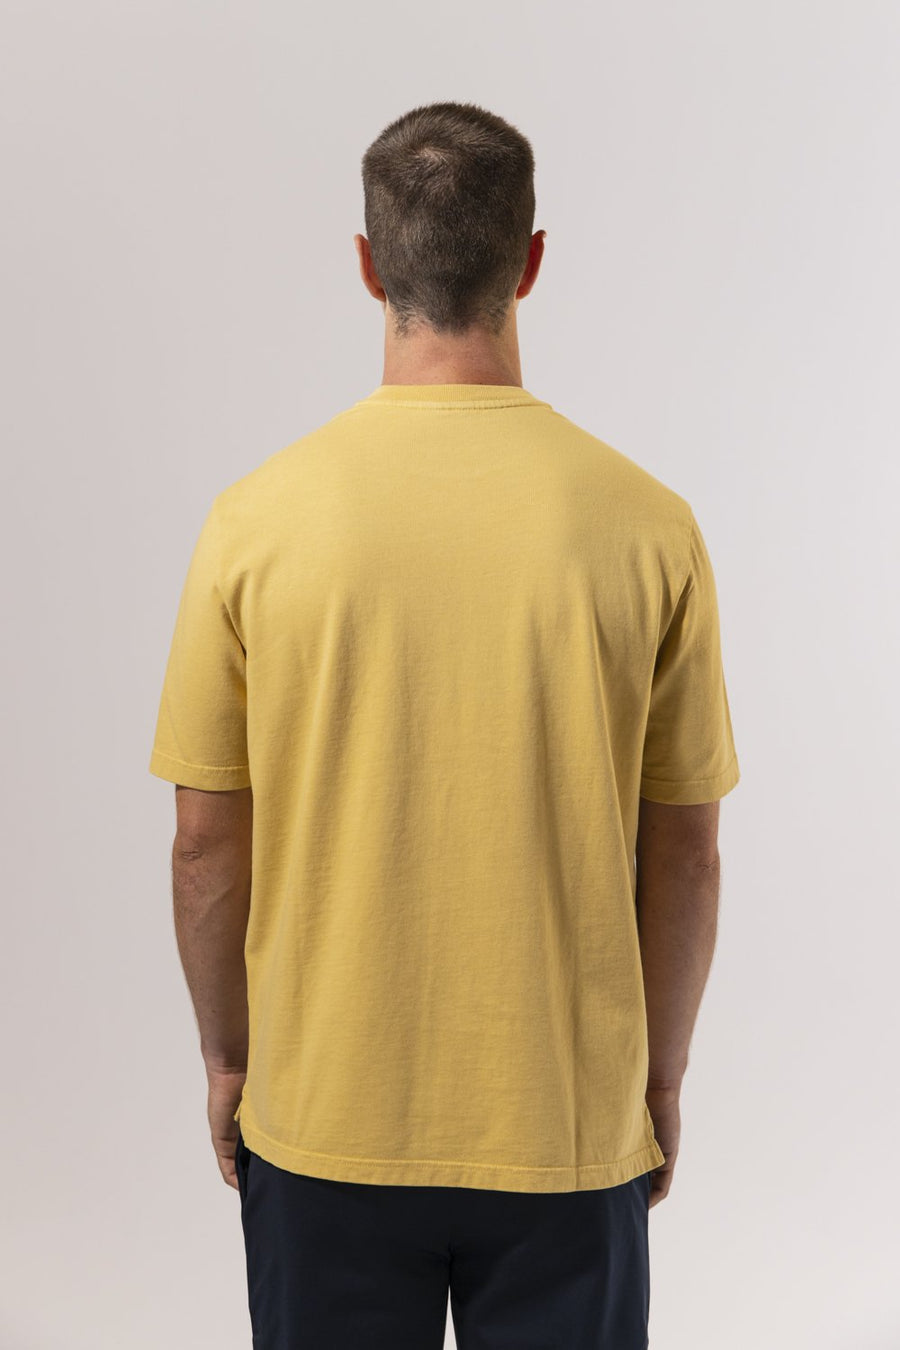 Unfeigned Gear Premium Basic Organic T-Shirt - Rattan Yellow